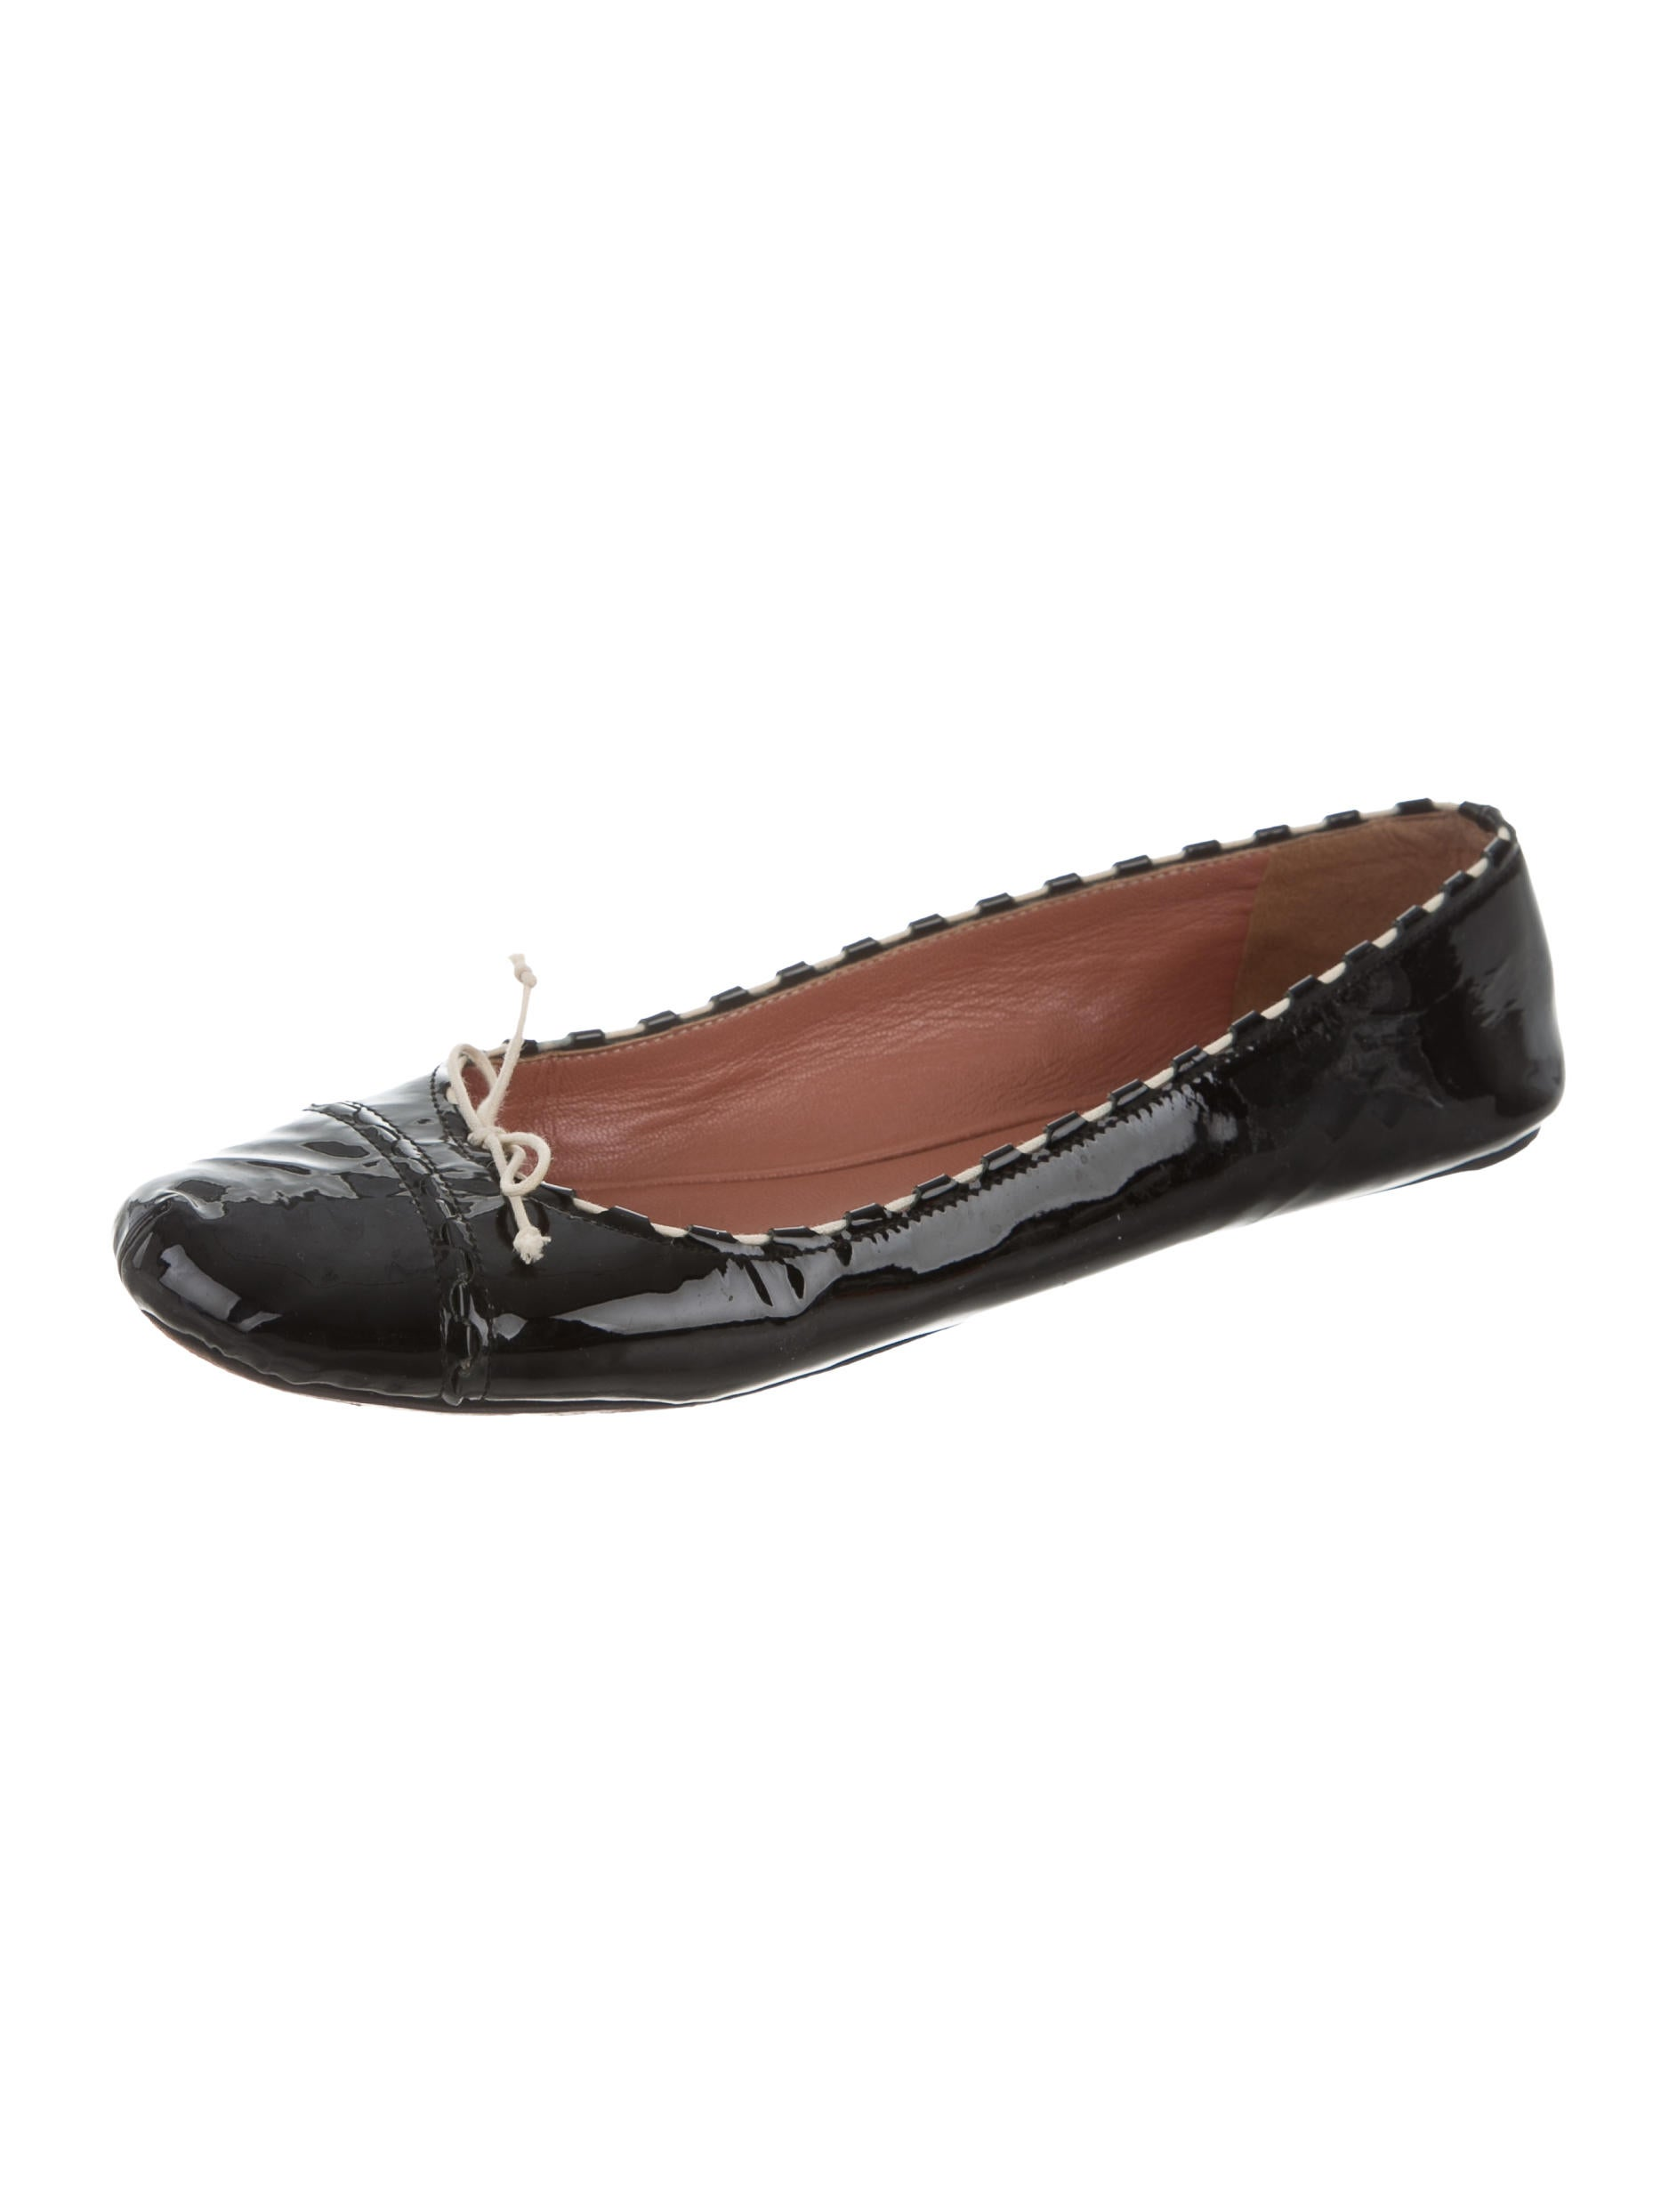 Patent finish ballet flat with die-cut detail. Adjustable buckle strap closure on the side with a decorative buckle on the upper. Fabric interior lining and insole.